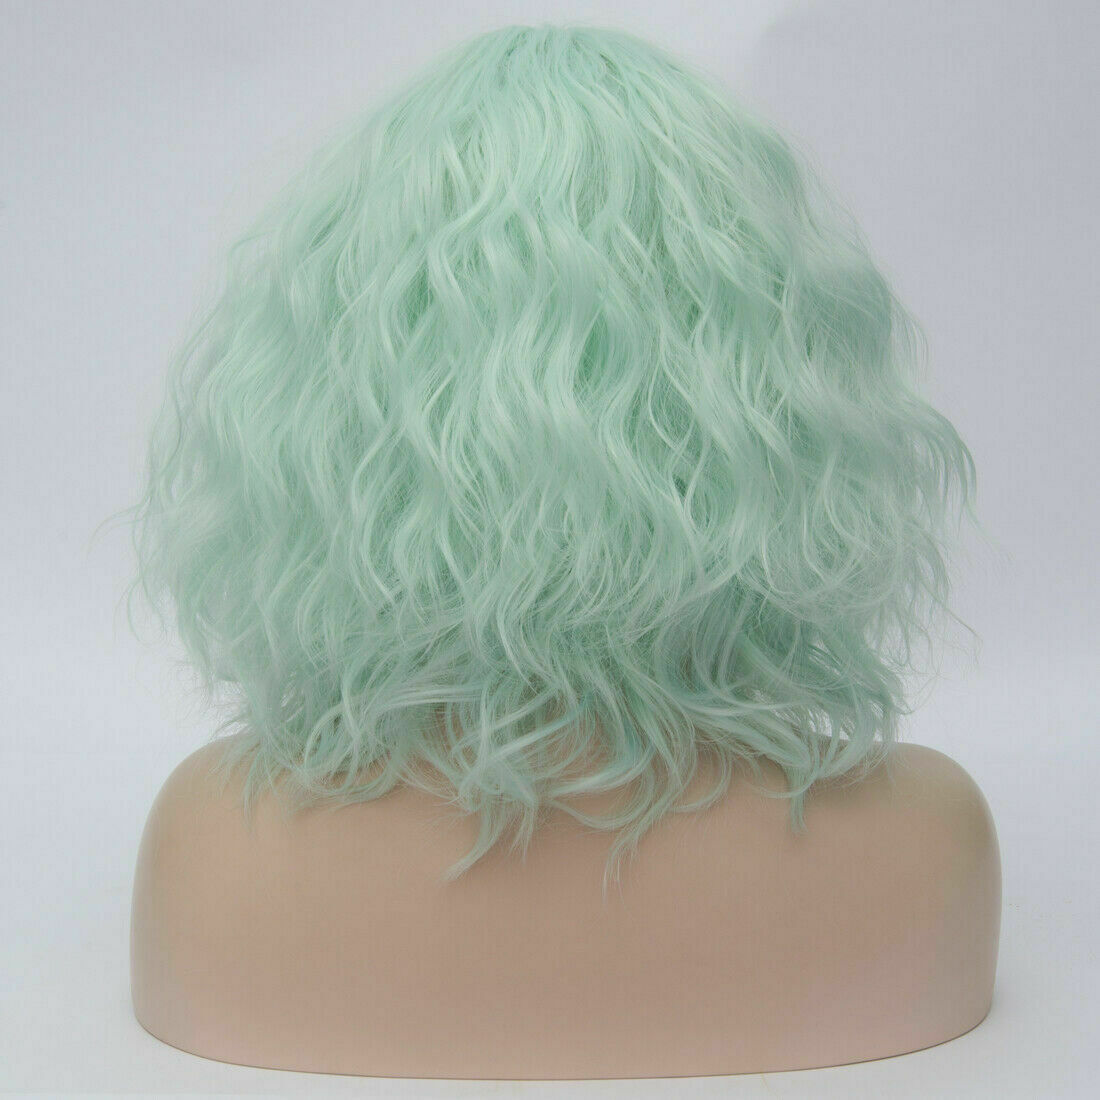 Lolita-Women-039-s-Short-Curly-Anime-Synthetic-Hair-Heat-Resistant-Cosplay-Party-Wig miniature 51